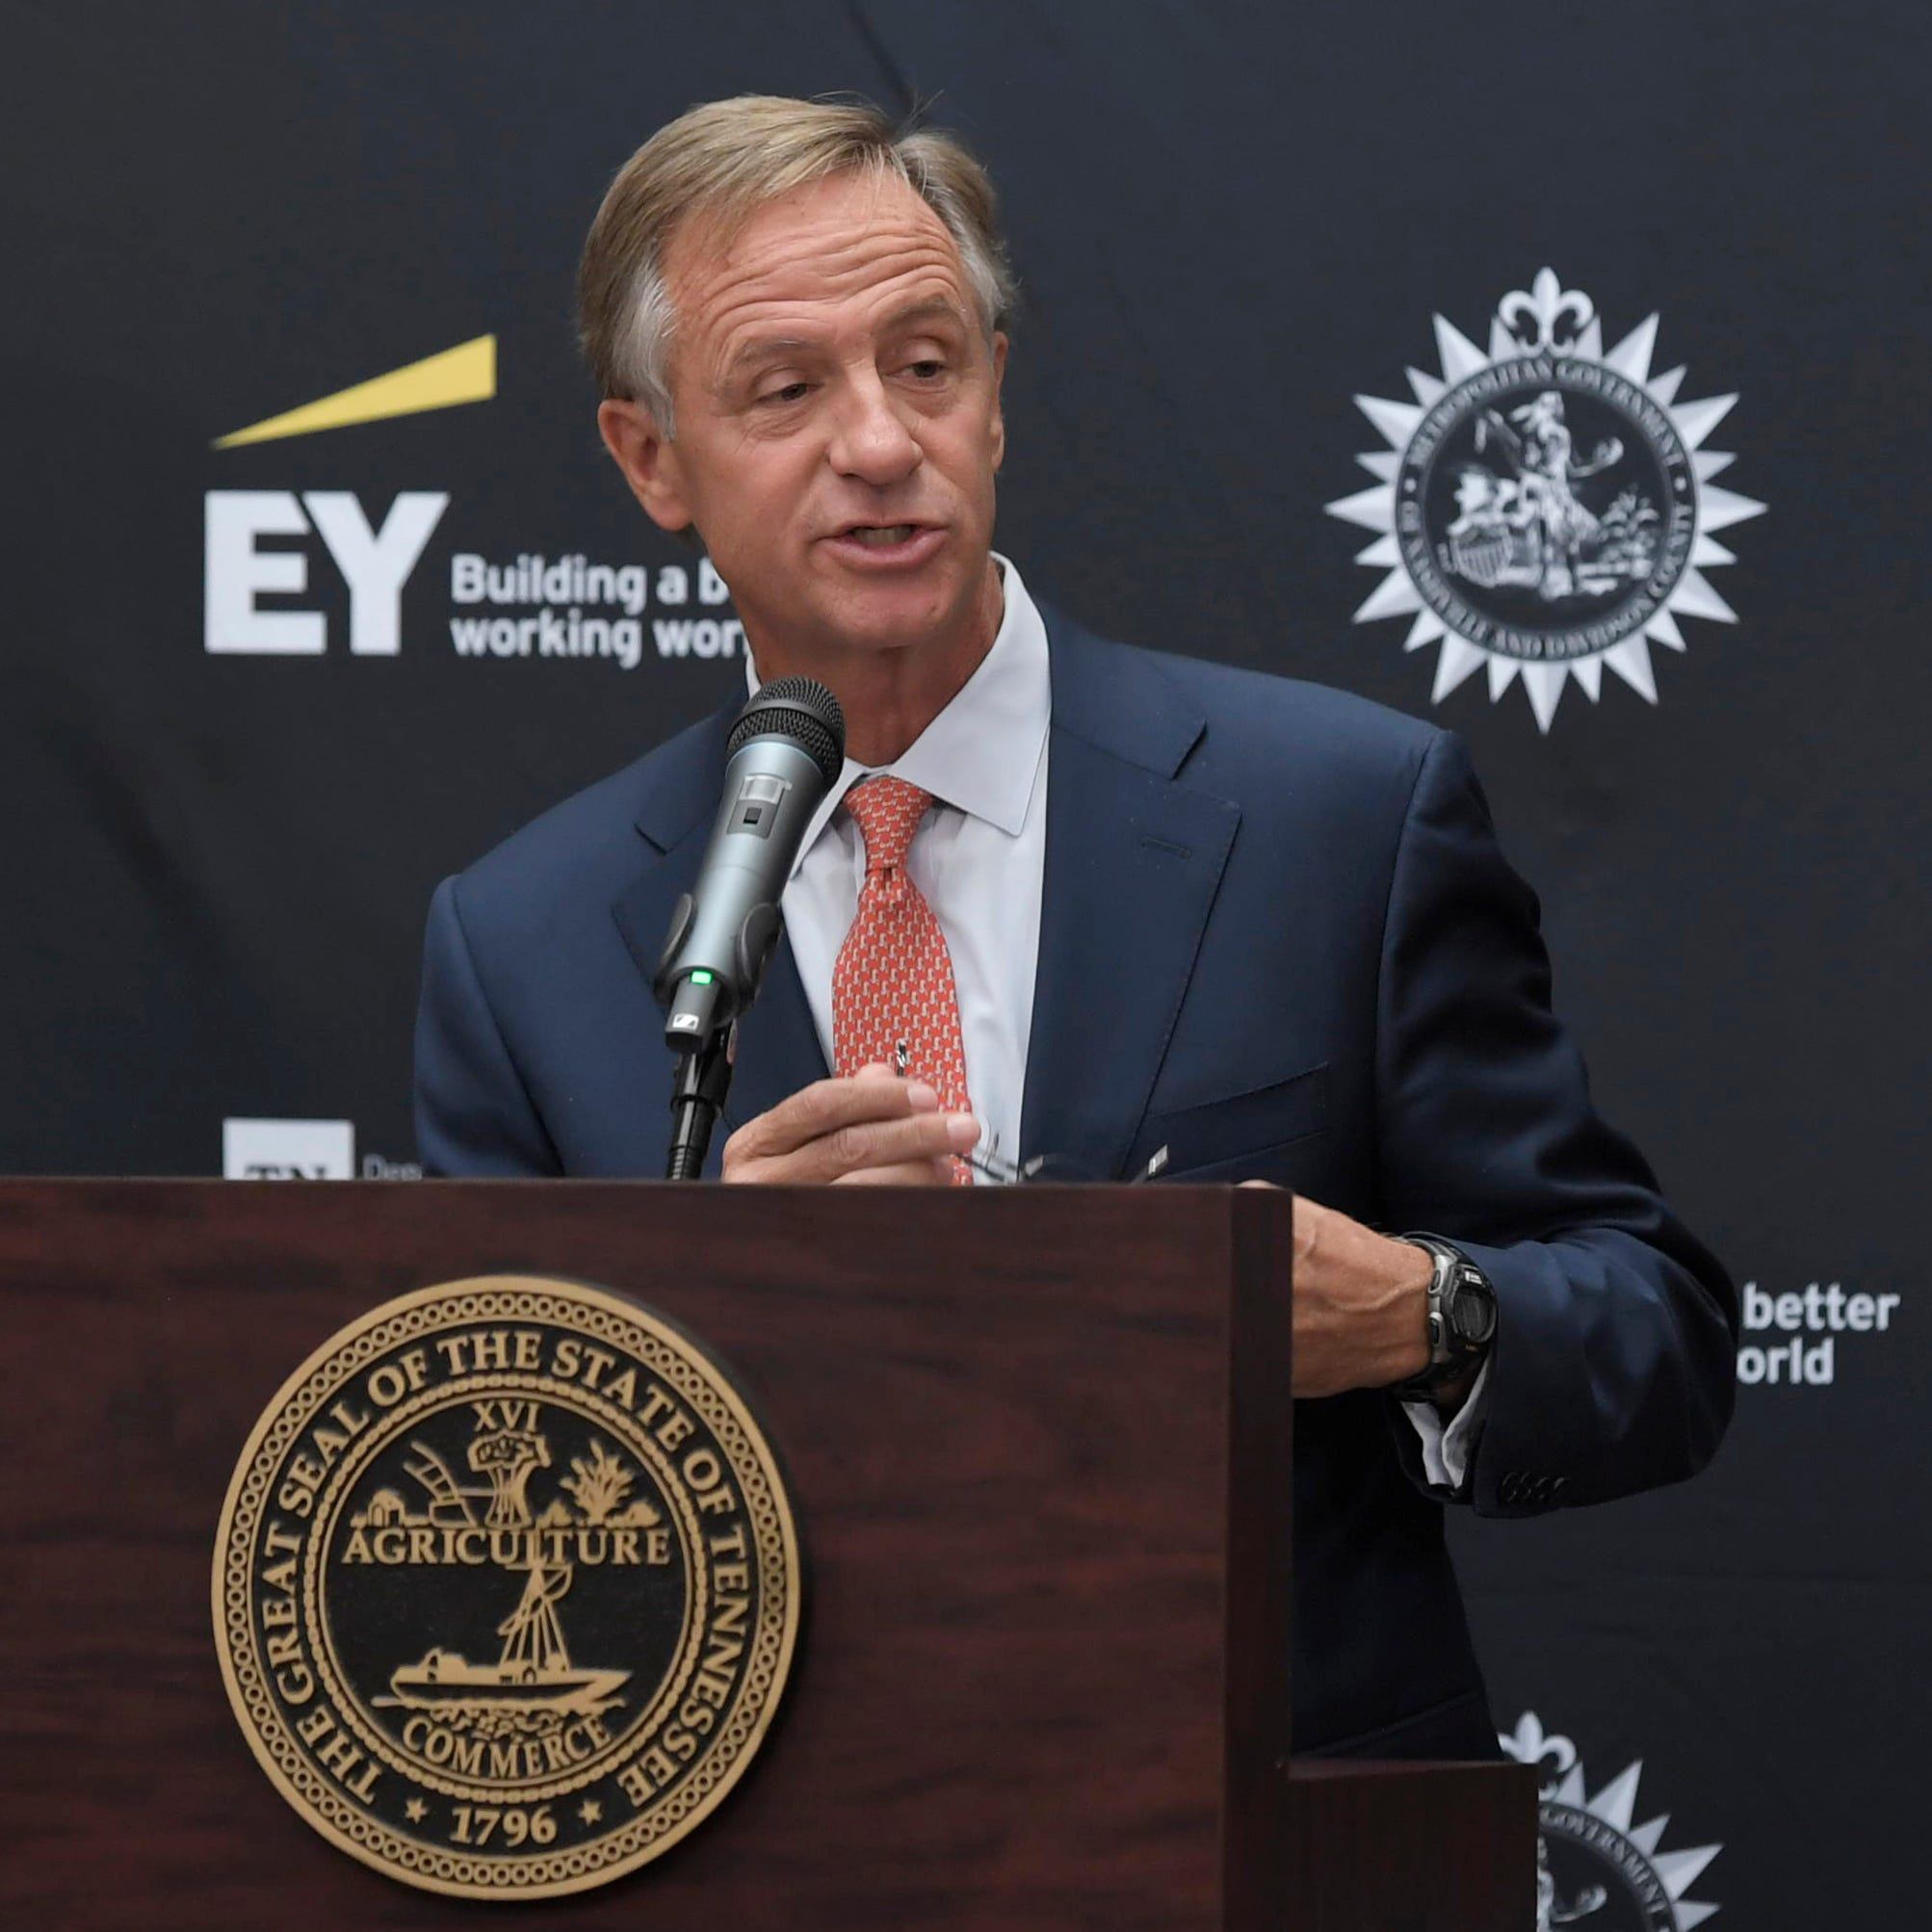 Major accounting firm EY announces new $22M Nashville office, bringing 600 jobs